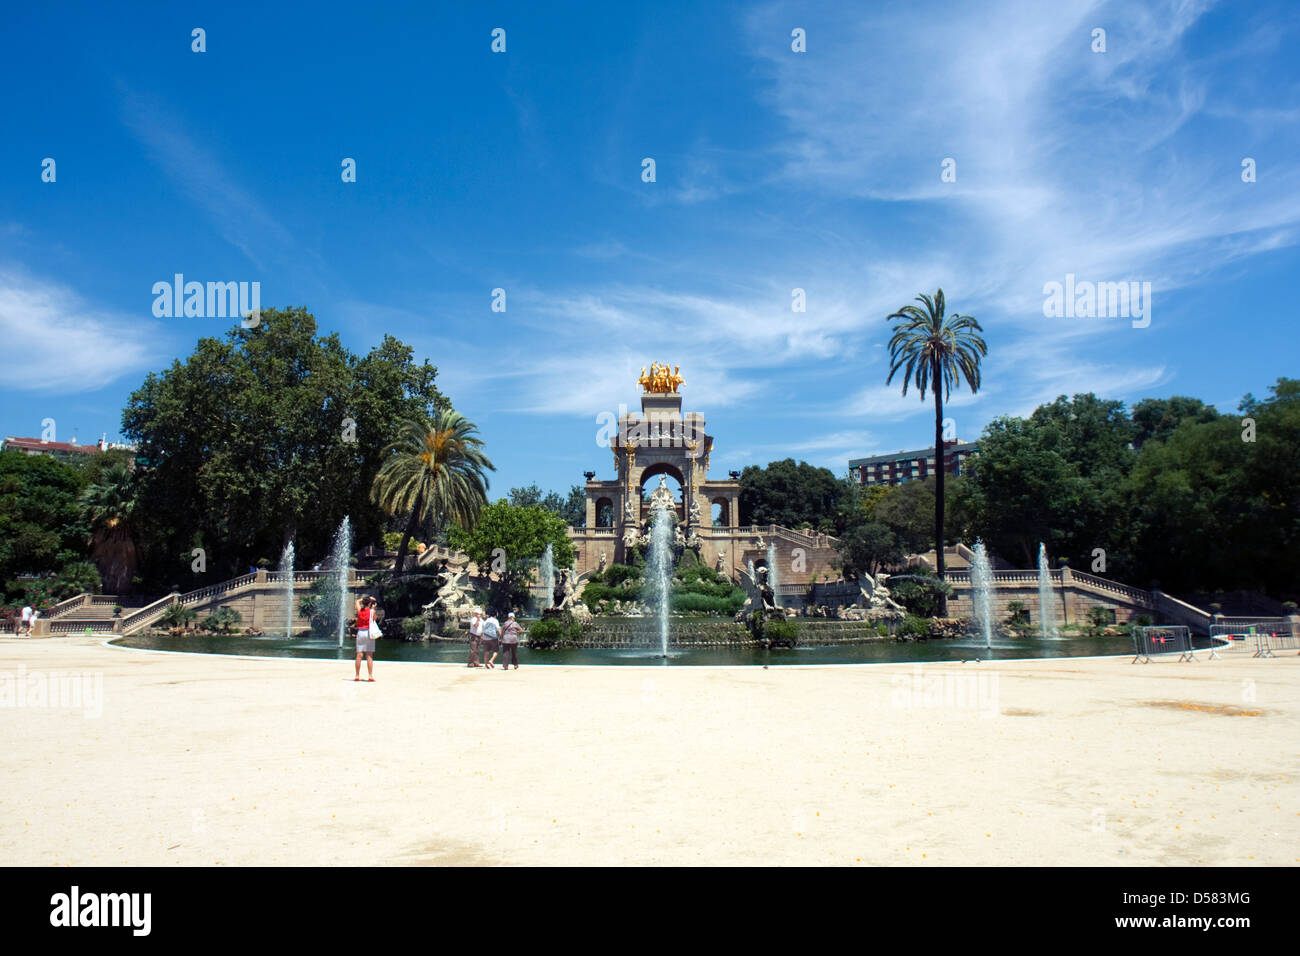 Fountain in Parc de la Ciutadella, Barcelona, Spain Stock Photo